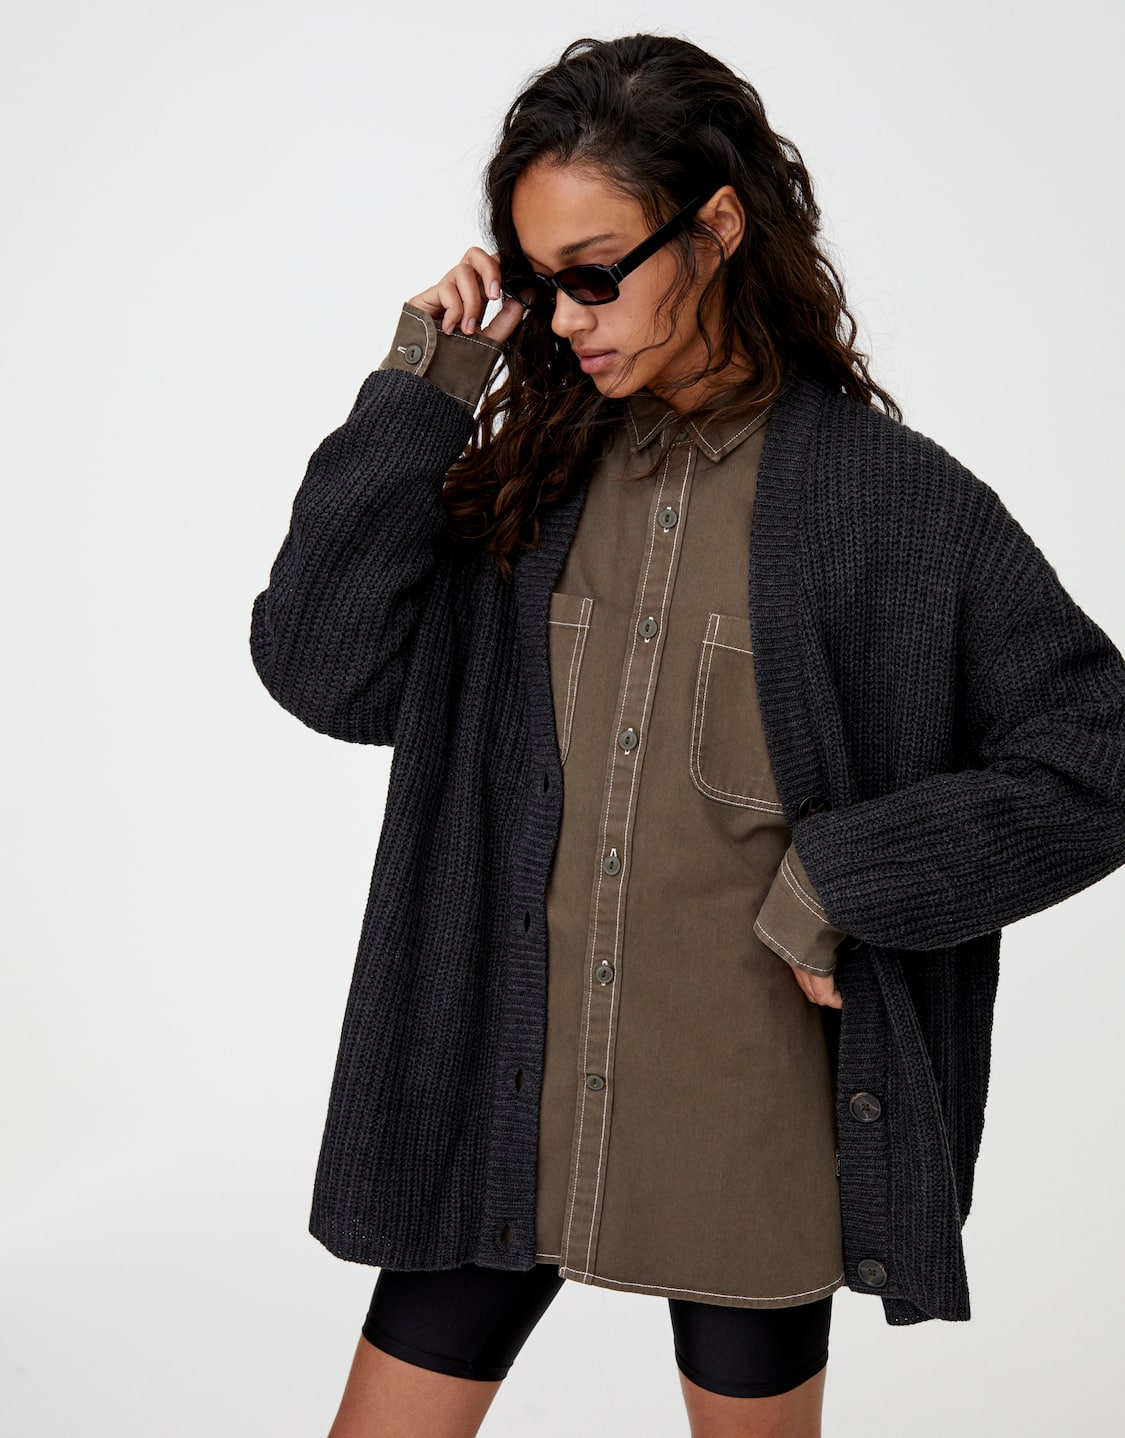 Basic Knit Button Up Cardigan by Pull & Bear